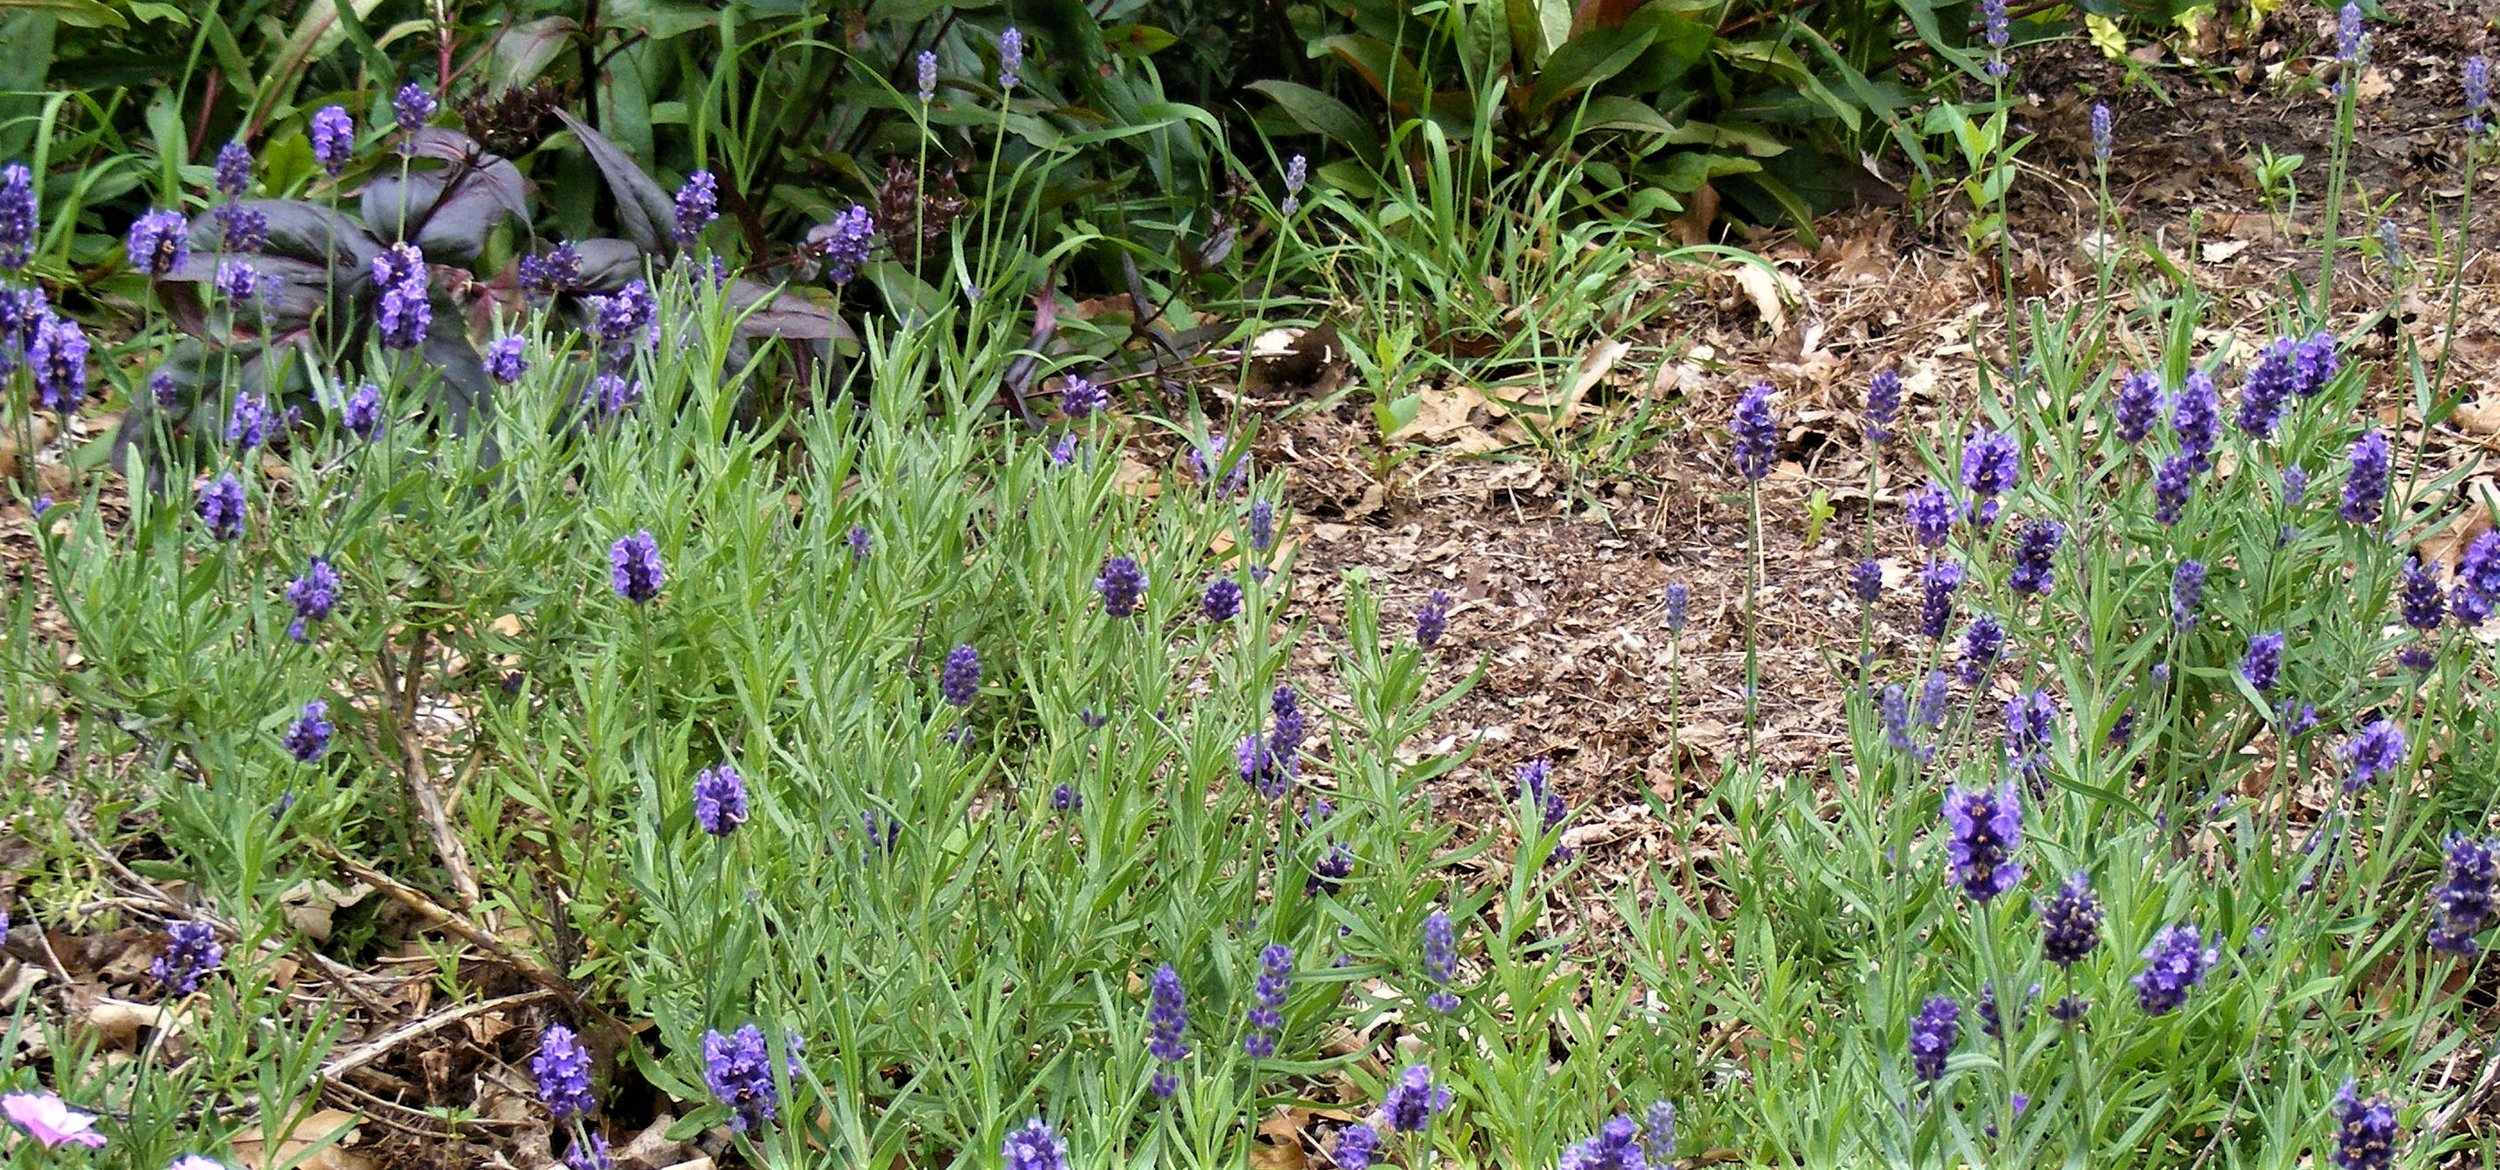 Lavendula Oxford Gem Zone 4 by Midwest Gardening.jpg